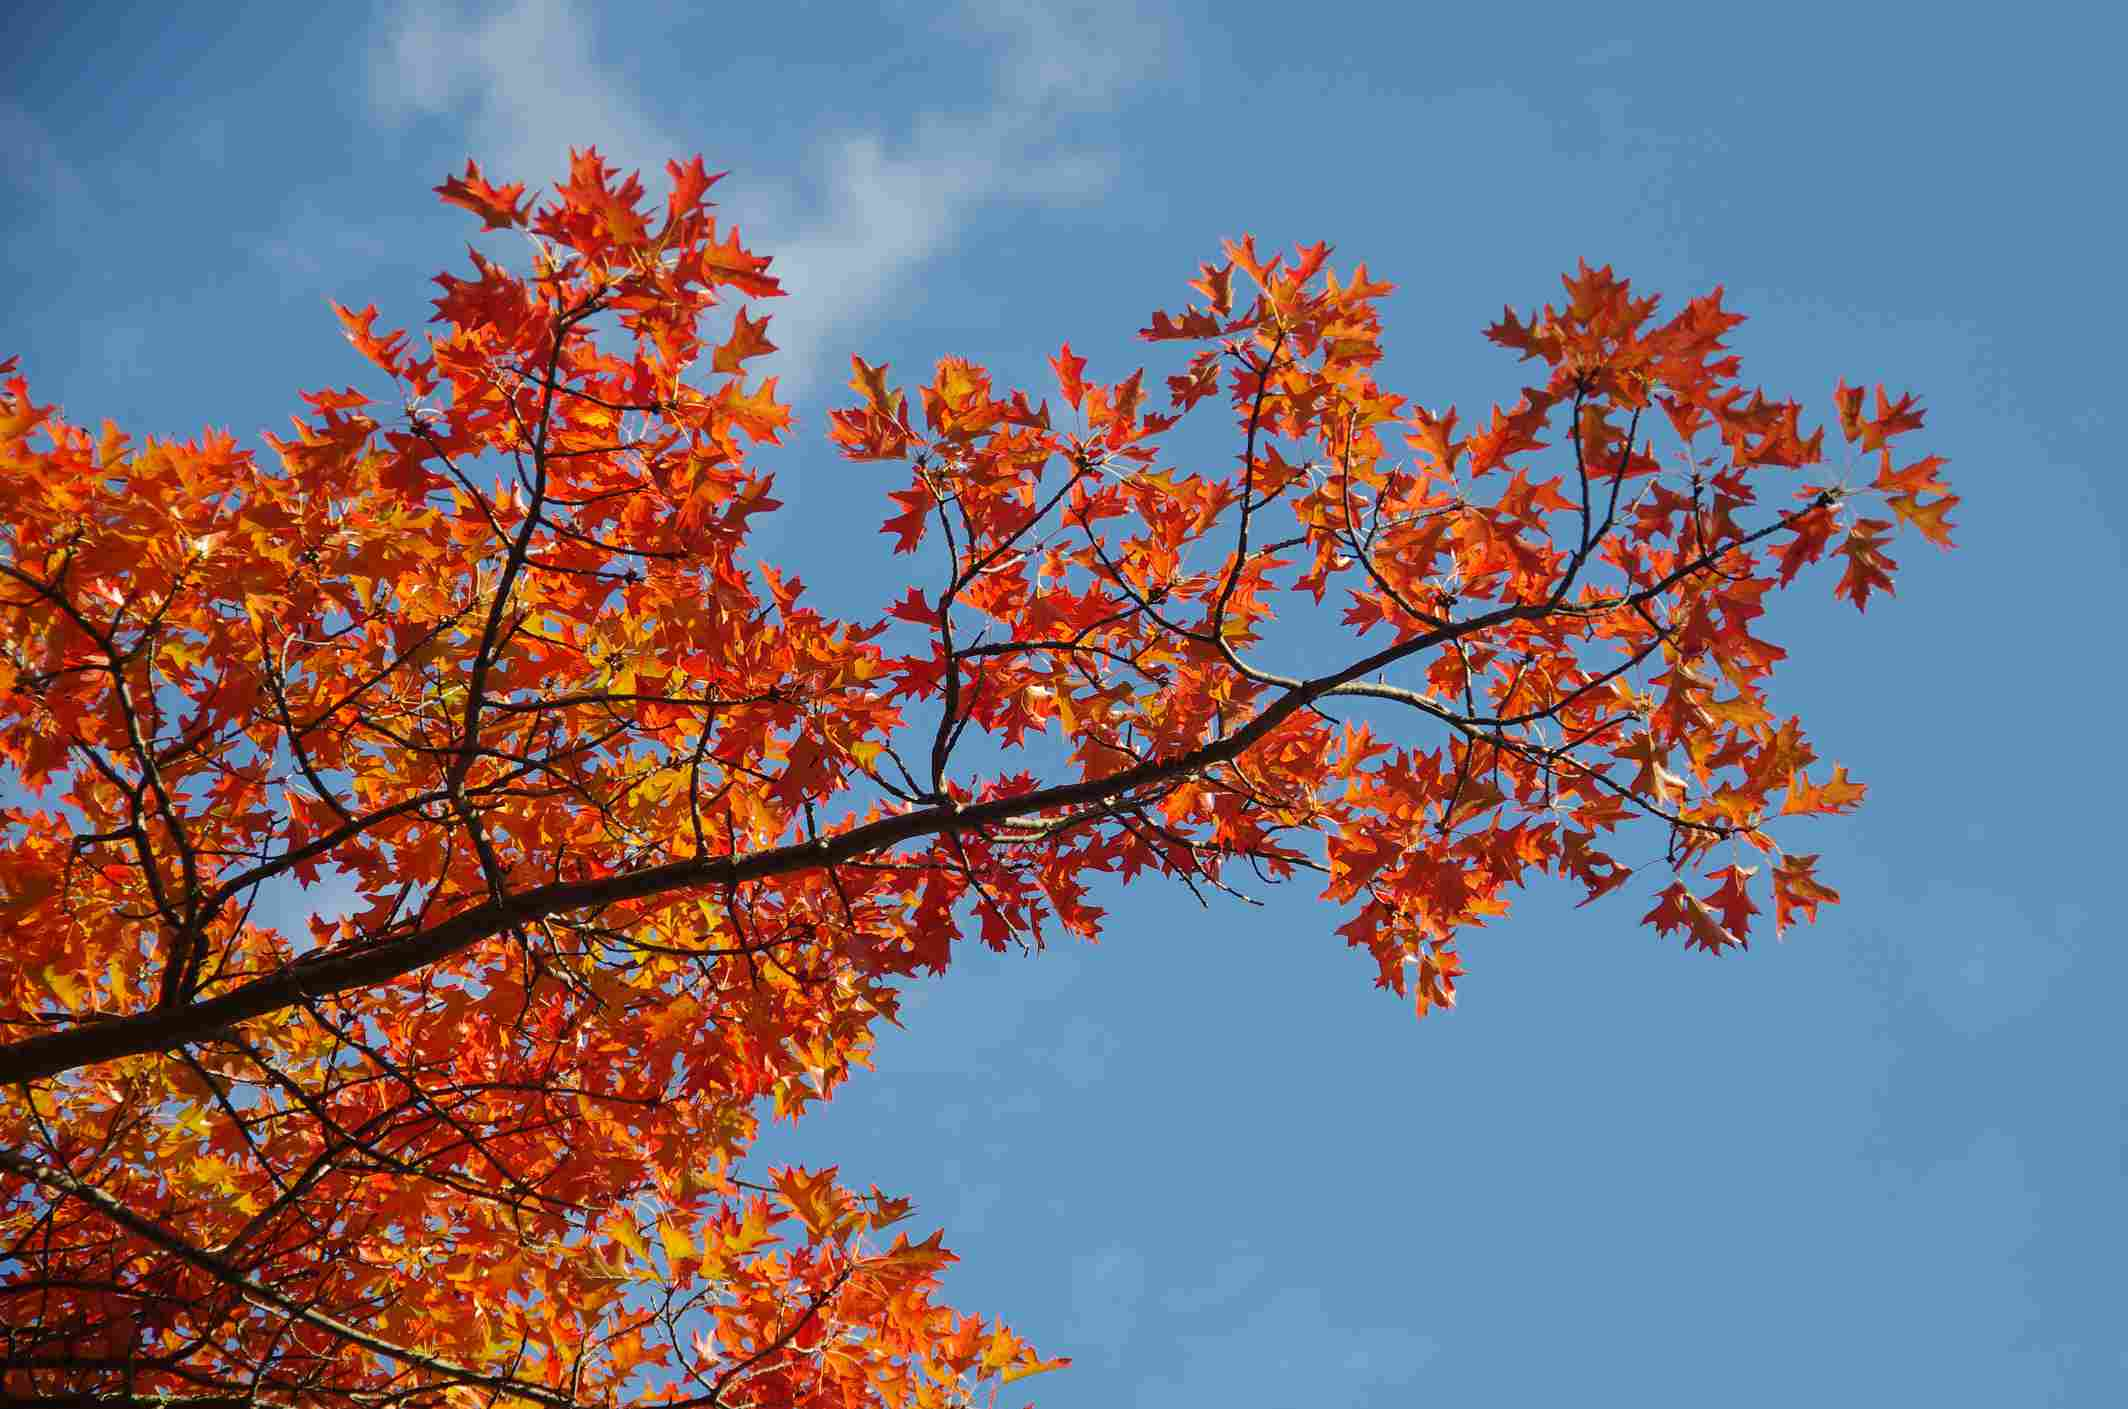 Red oak tree with fall color.